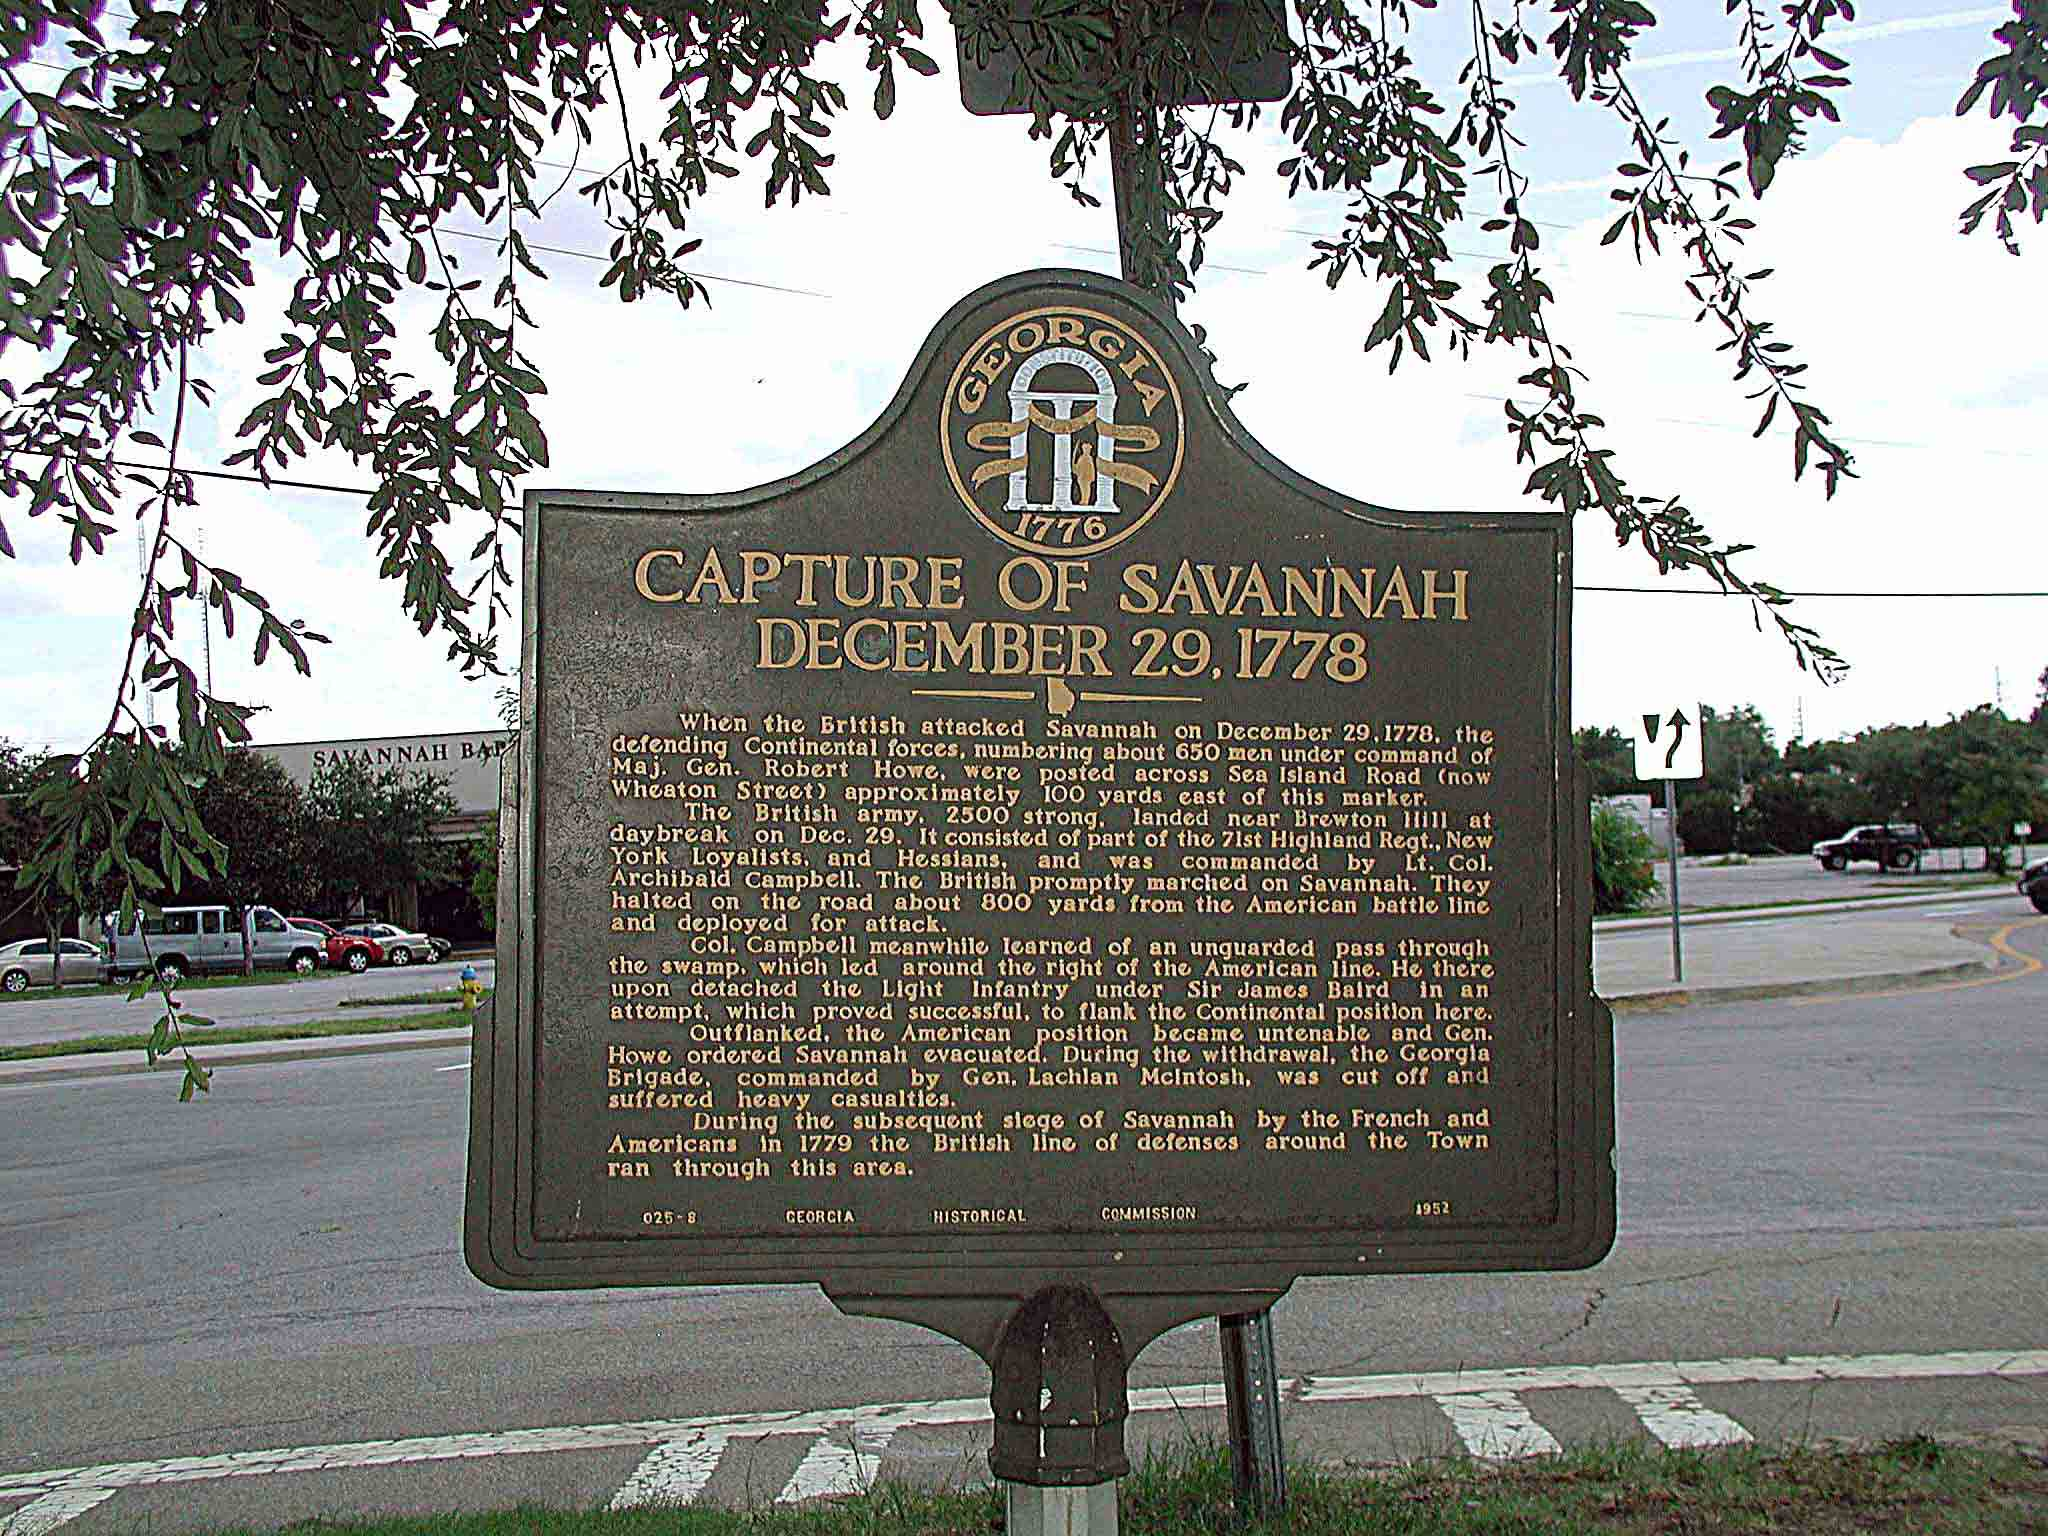 The Capture of Savannah marker, located in Savannah Georgia.